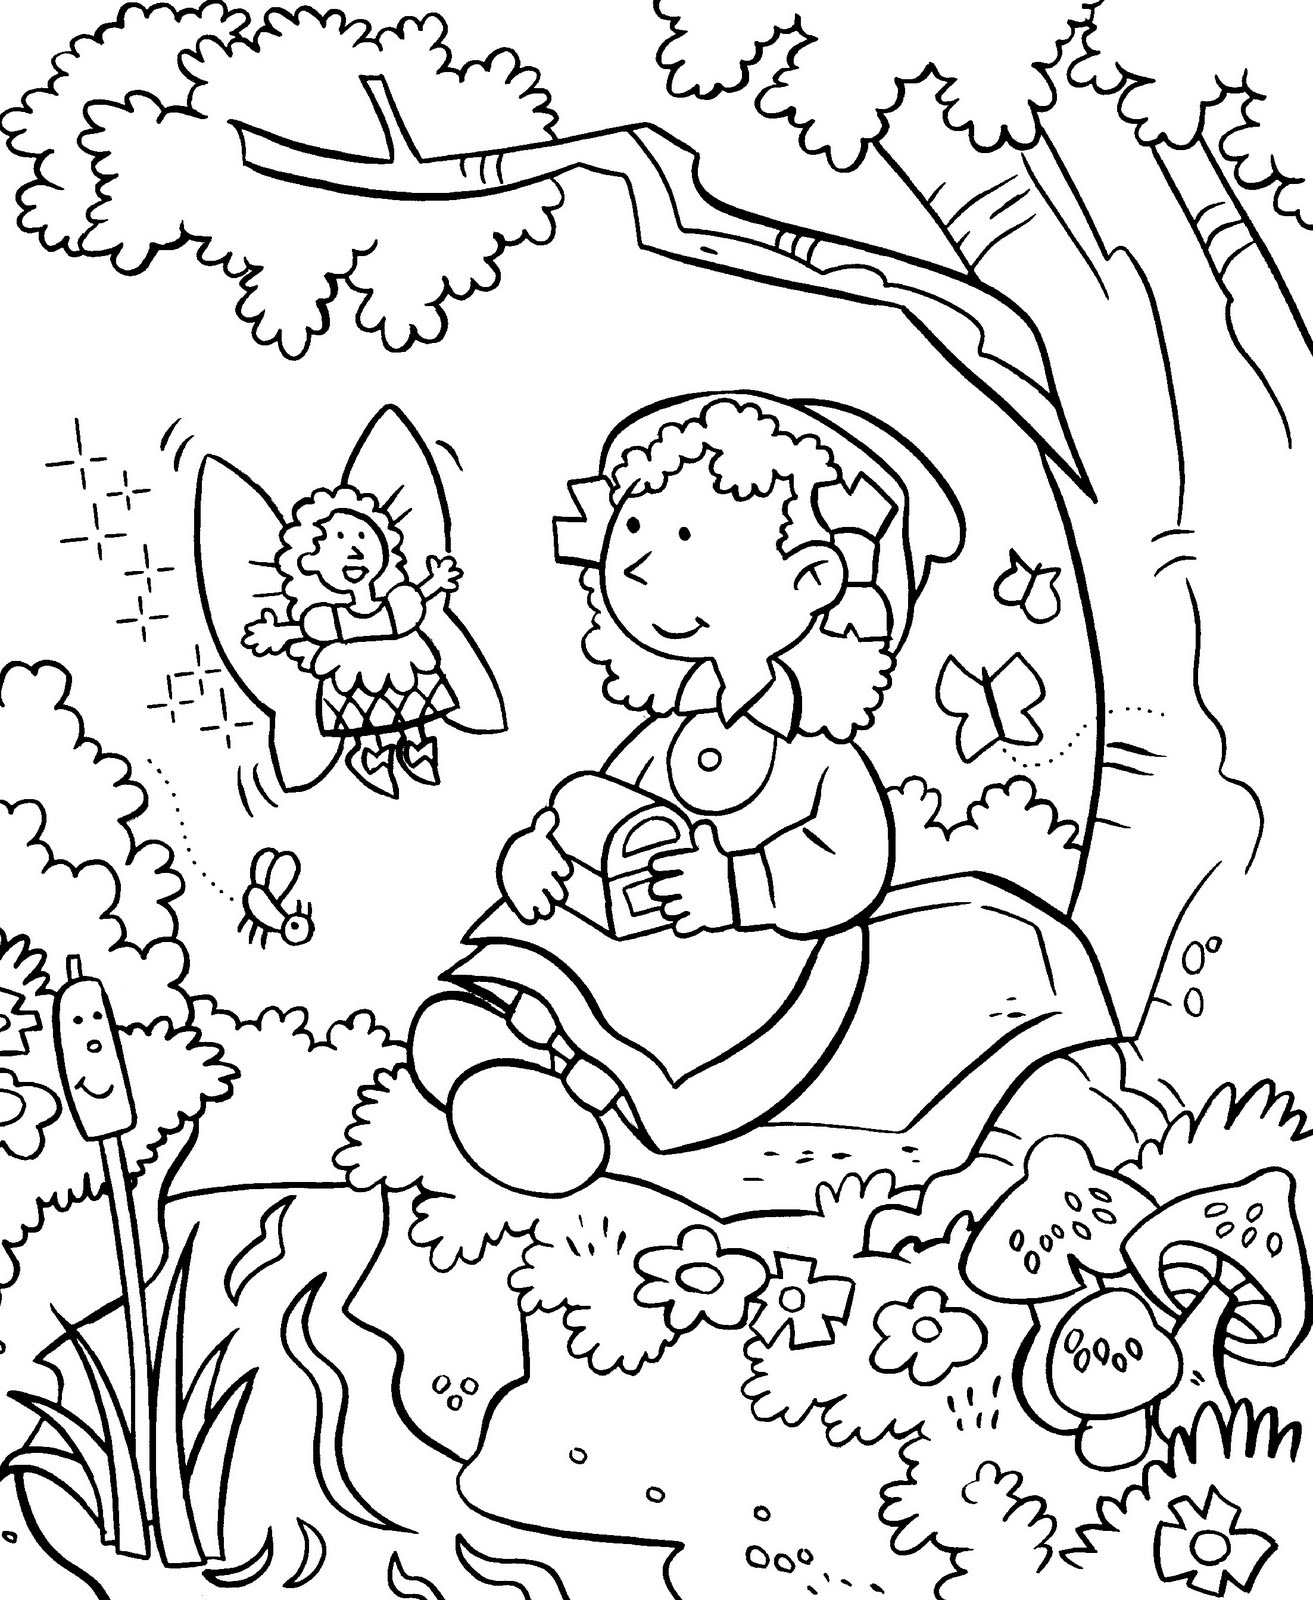 Flower Garden Colouring : Coloring pages for kids flower garden